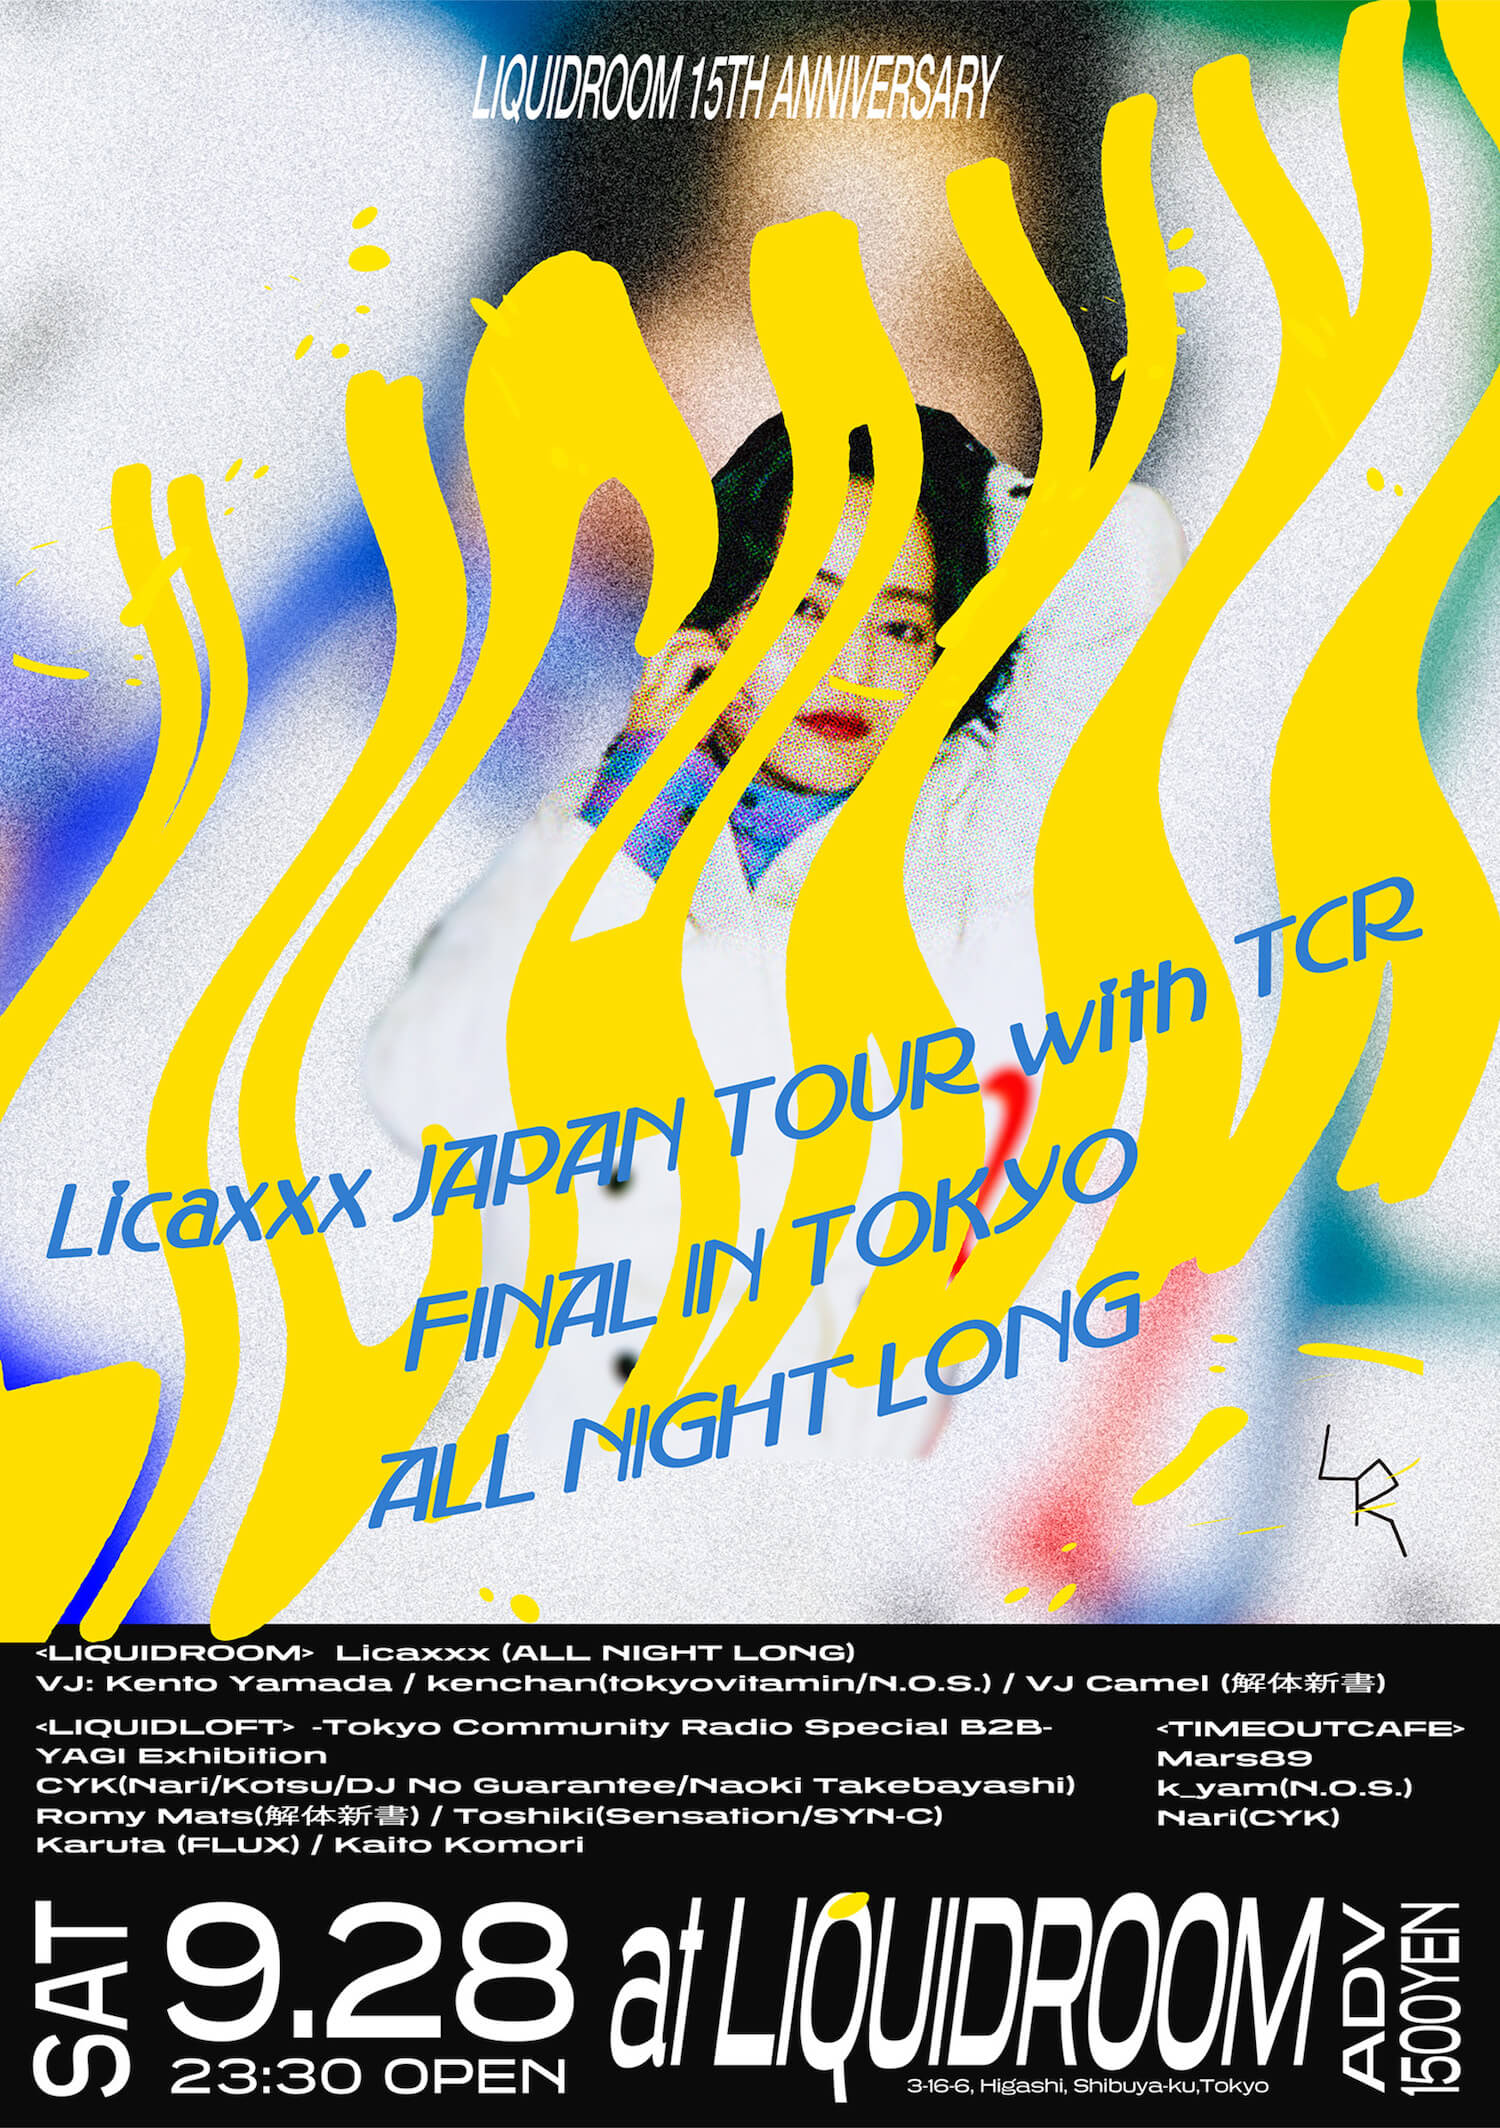 Licaxxx Japan Tour With TCR Final in TOKYO ALL NIGHT LONG